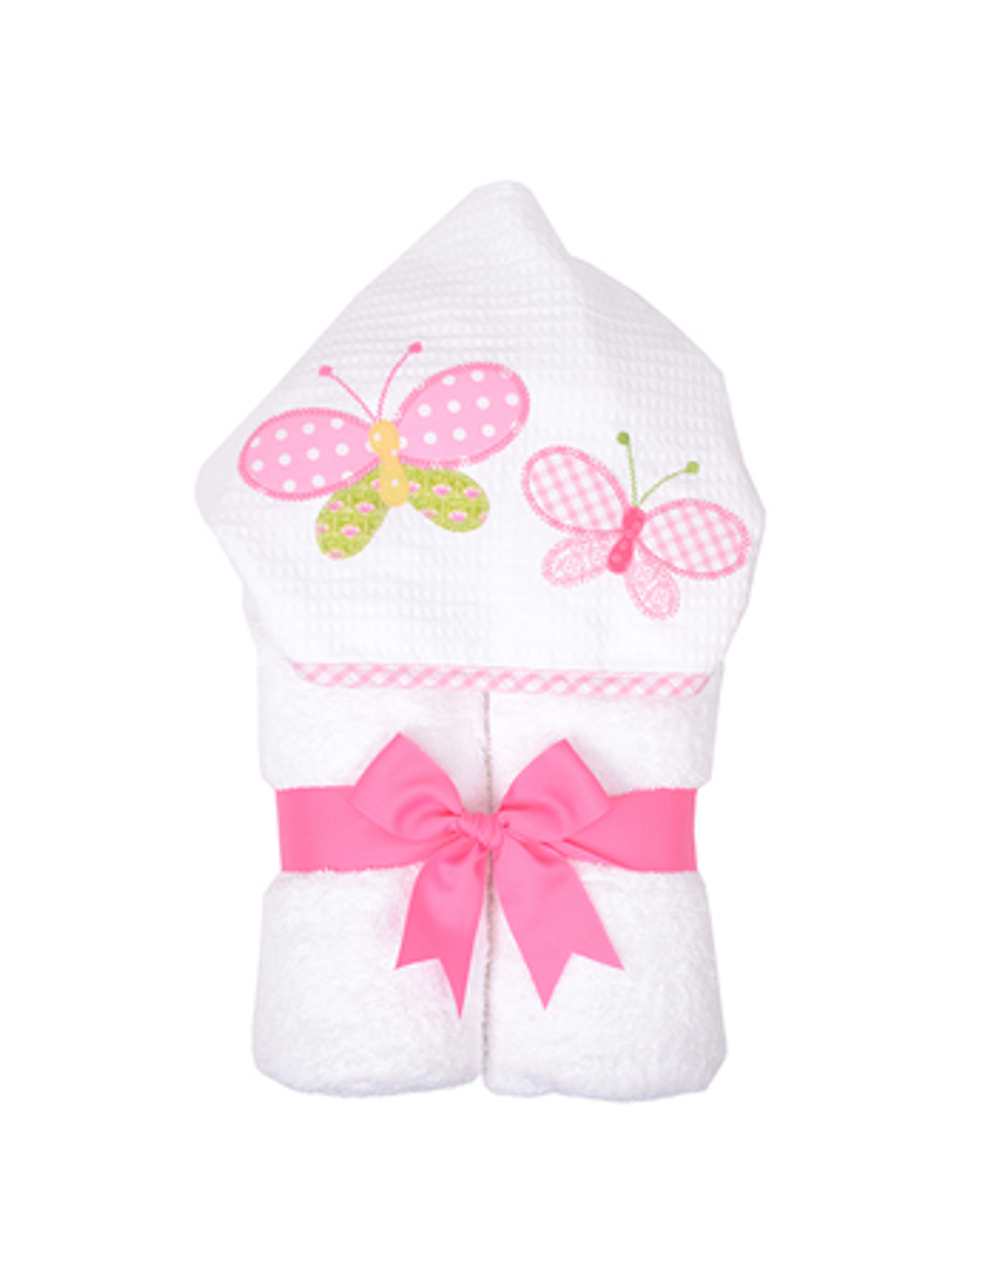 Embroidered Butterfly 20 Personalised Towels Butterfly Embroidered Towels